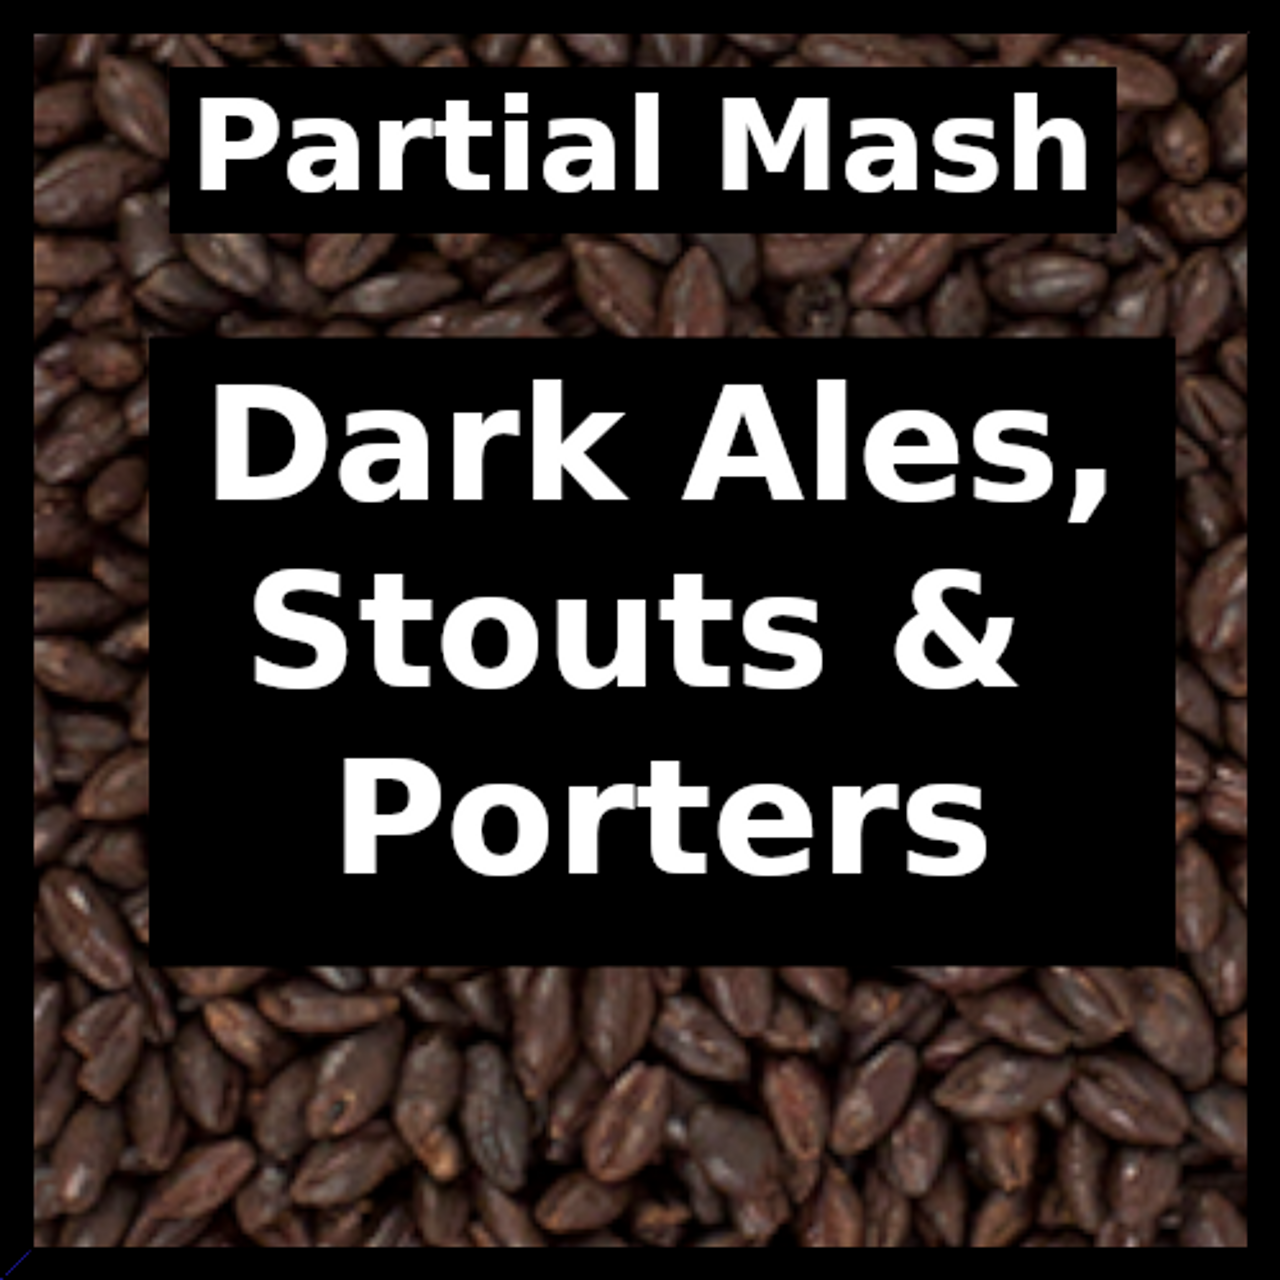 Dark Ales, Stouts & Porters - Partial Mash